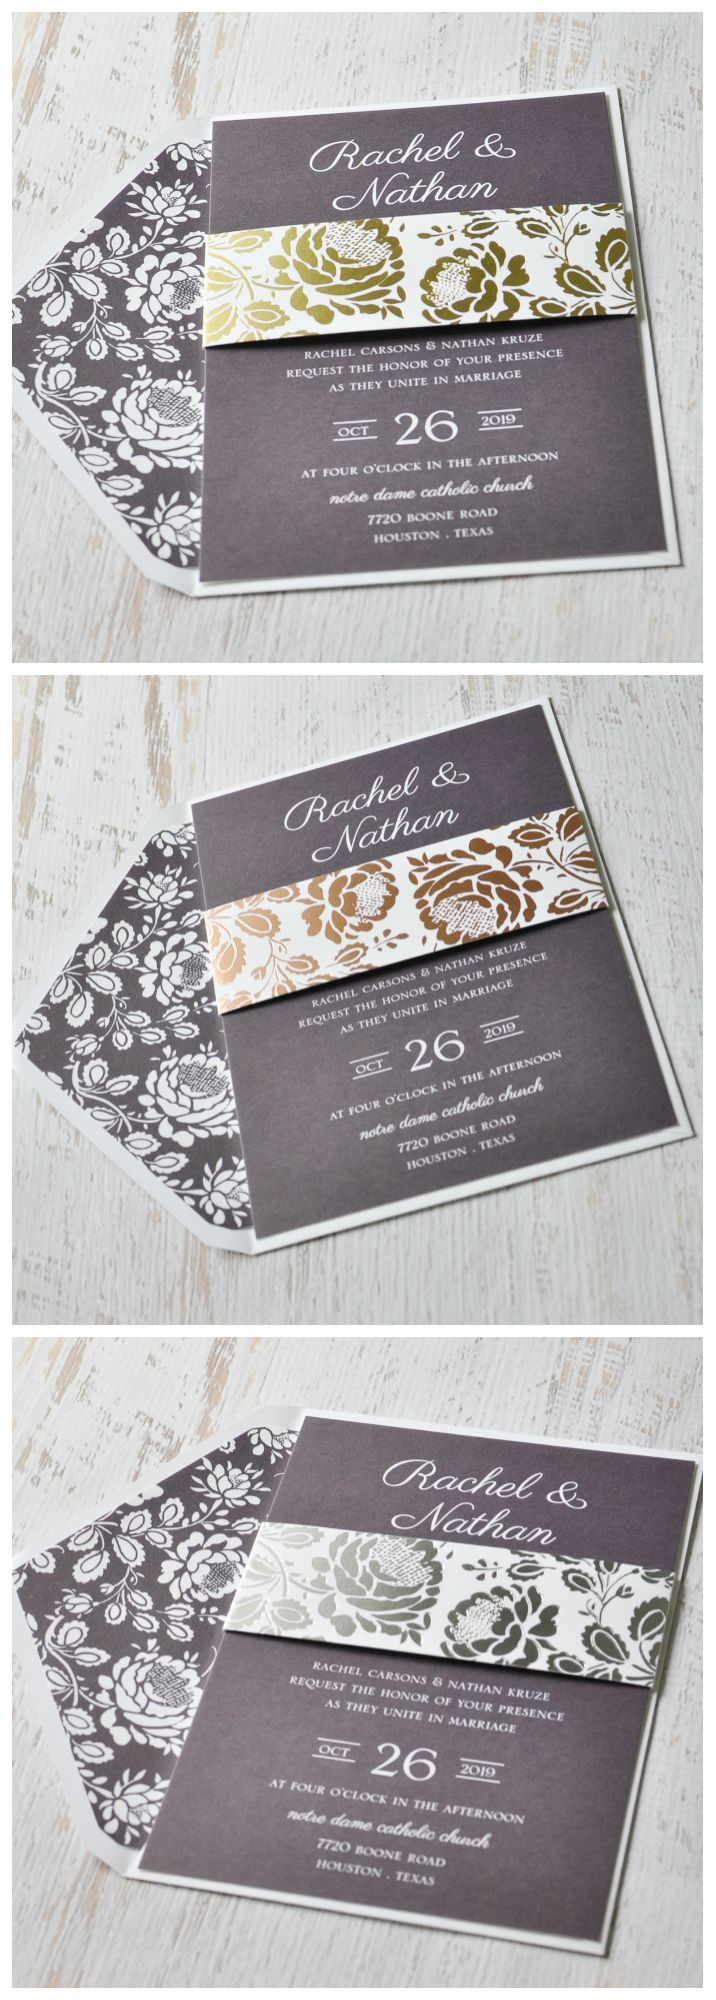 how much do invitations for wedding cost%0A A touch of shine and a lot of style will captivate your wedding guests  This